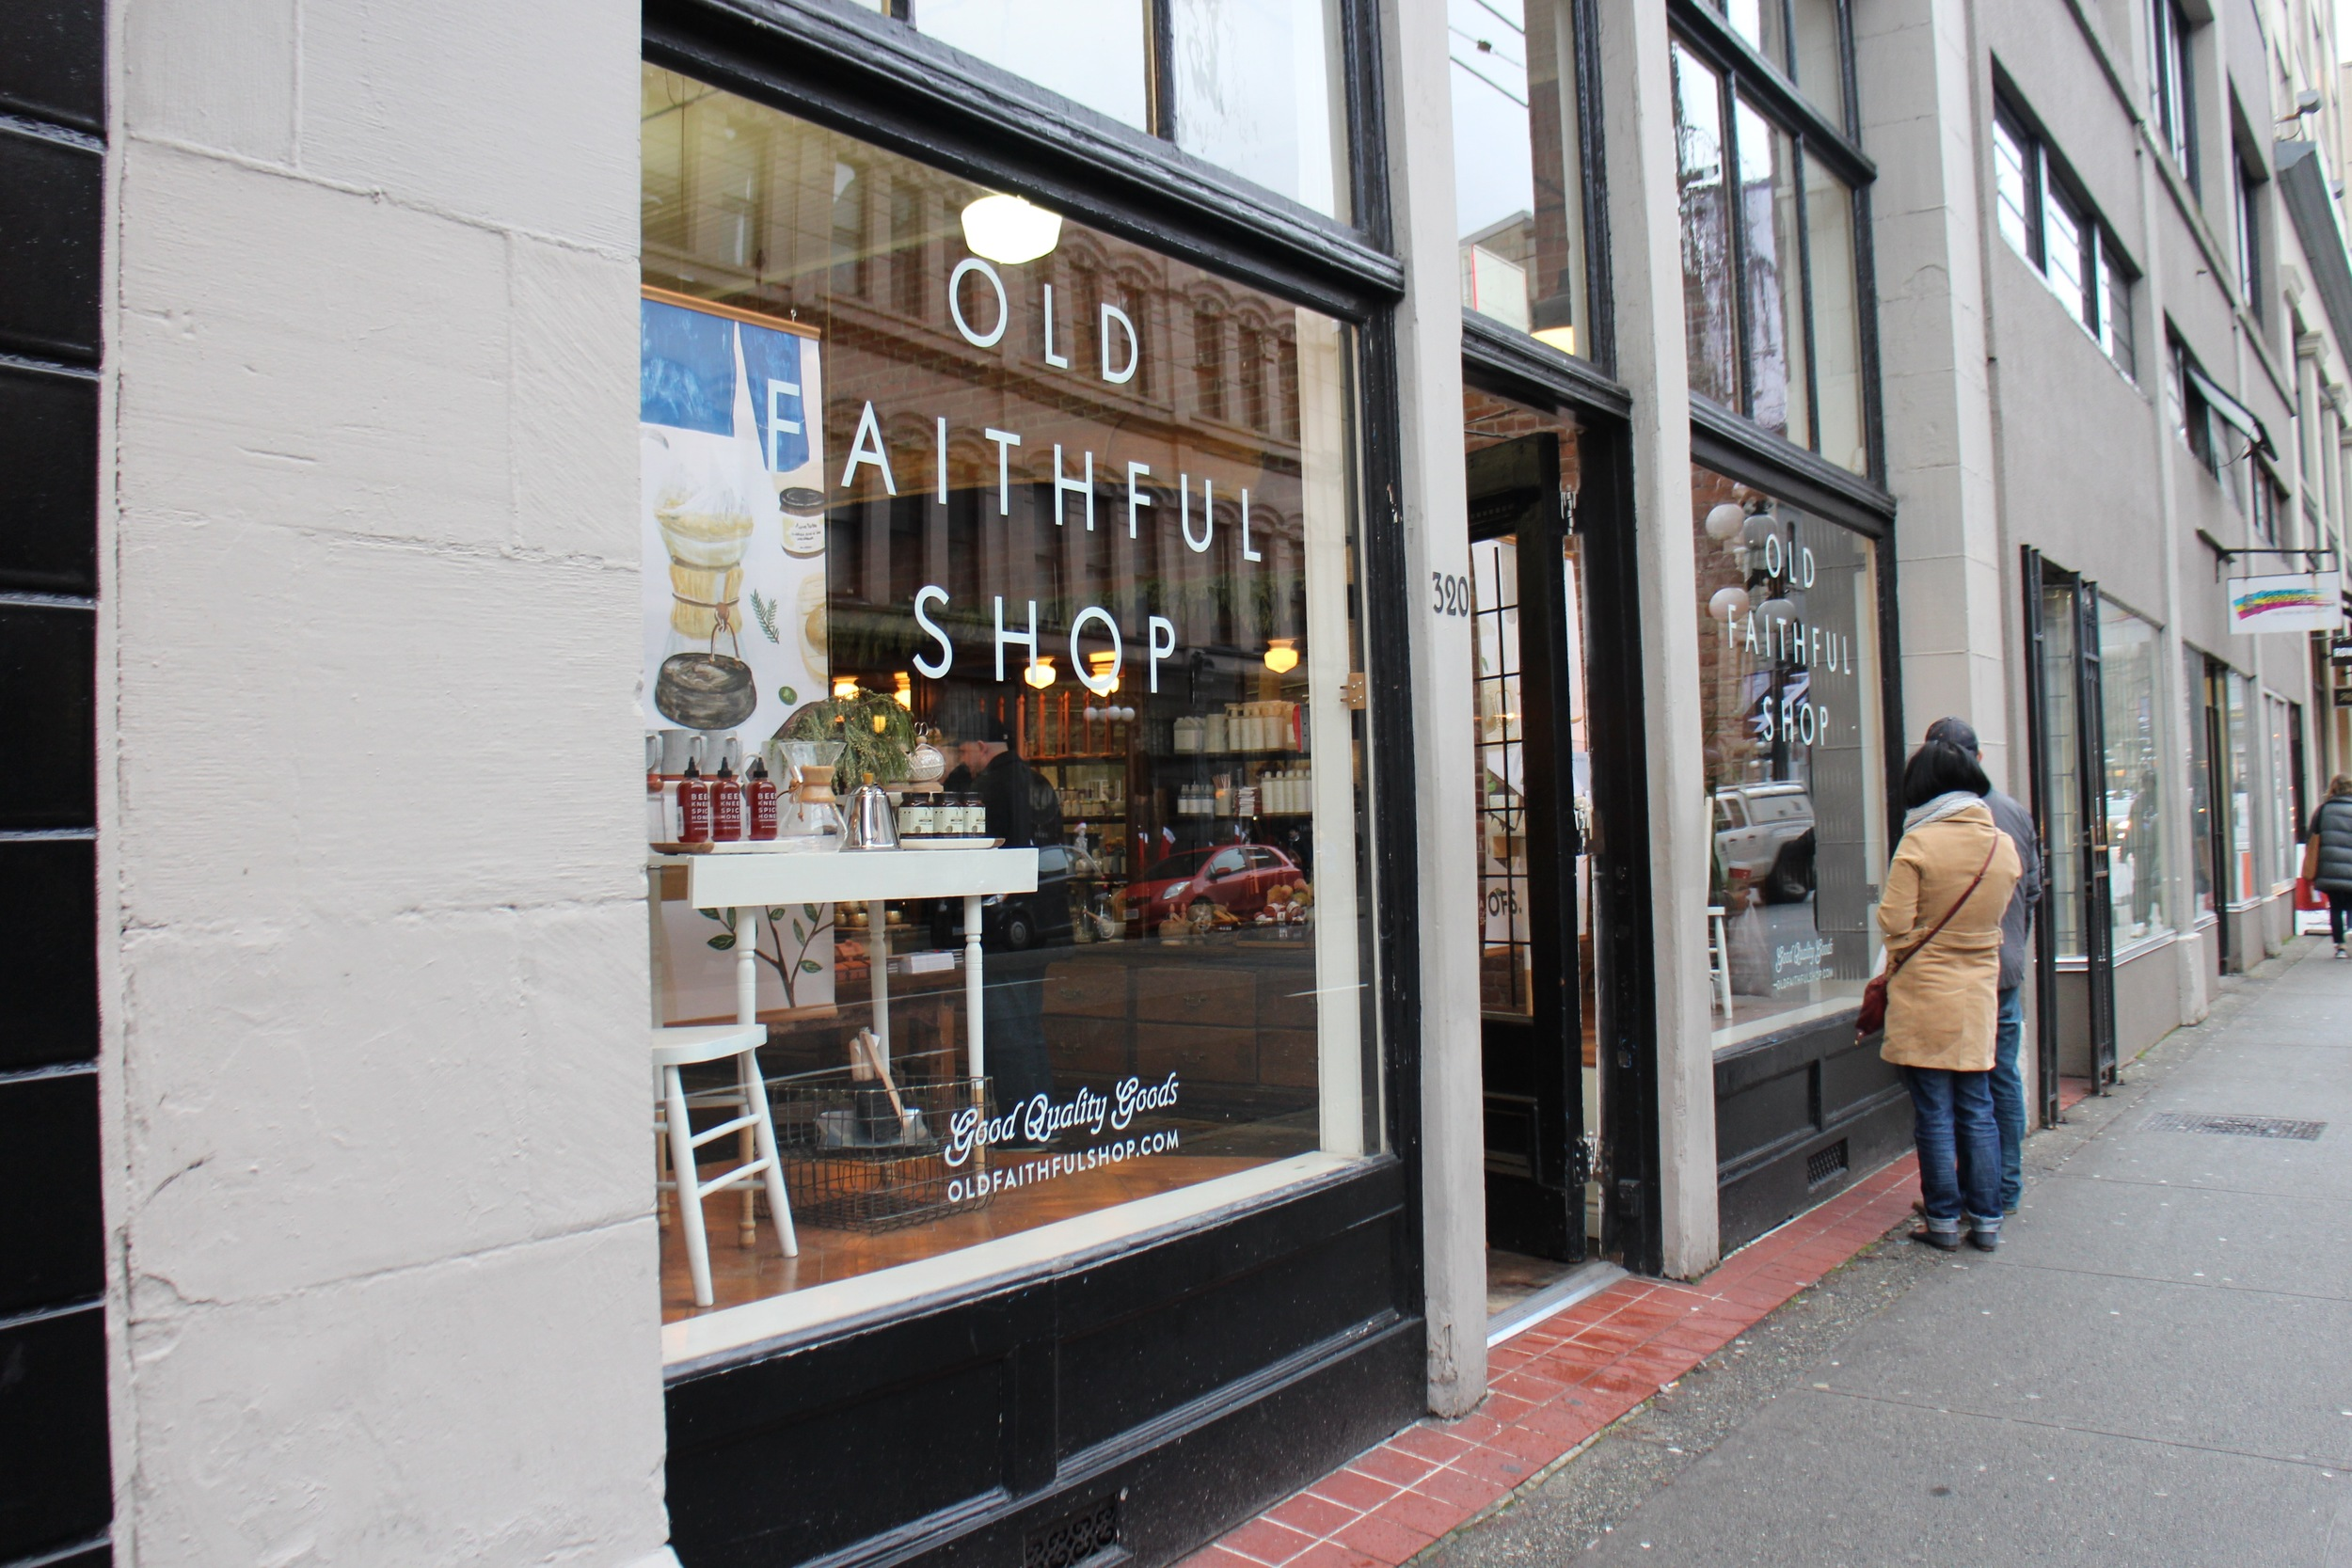 Old Faithful Shop Gastown